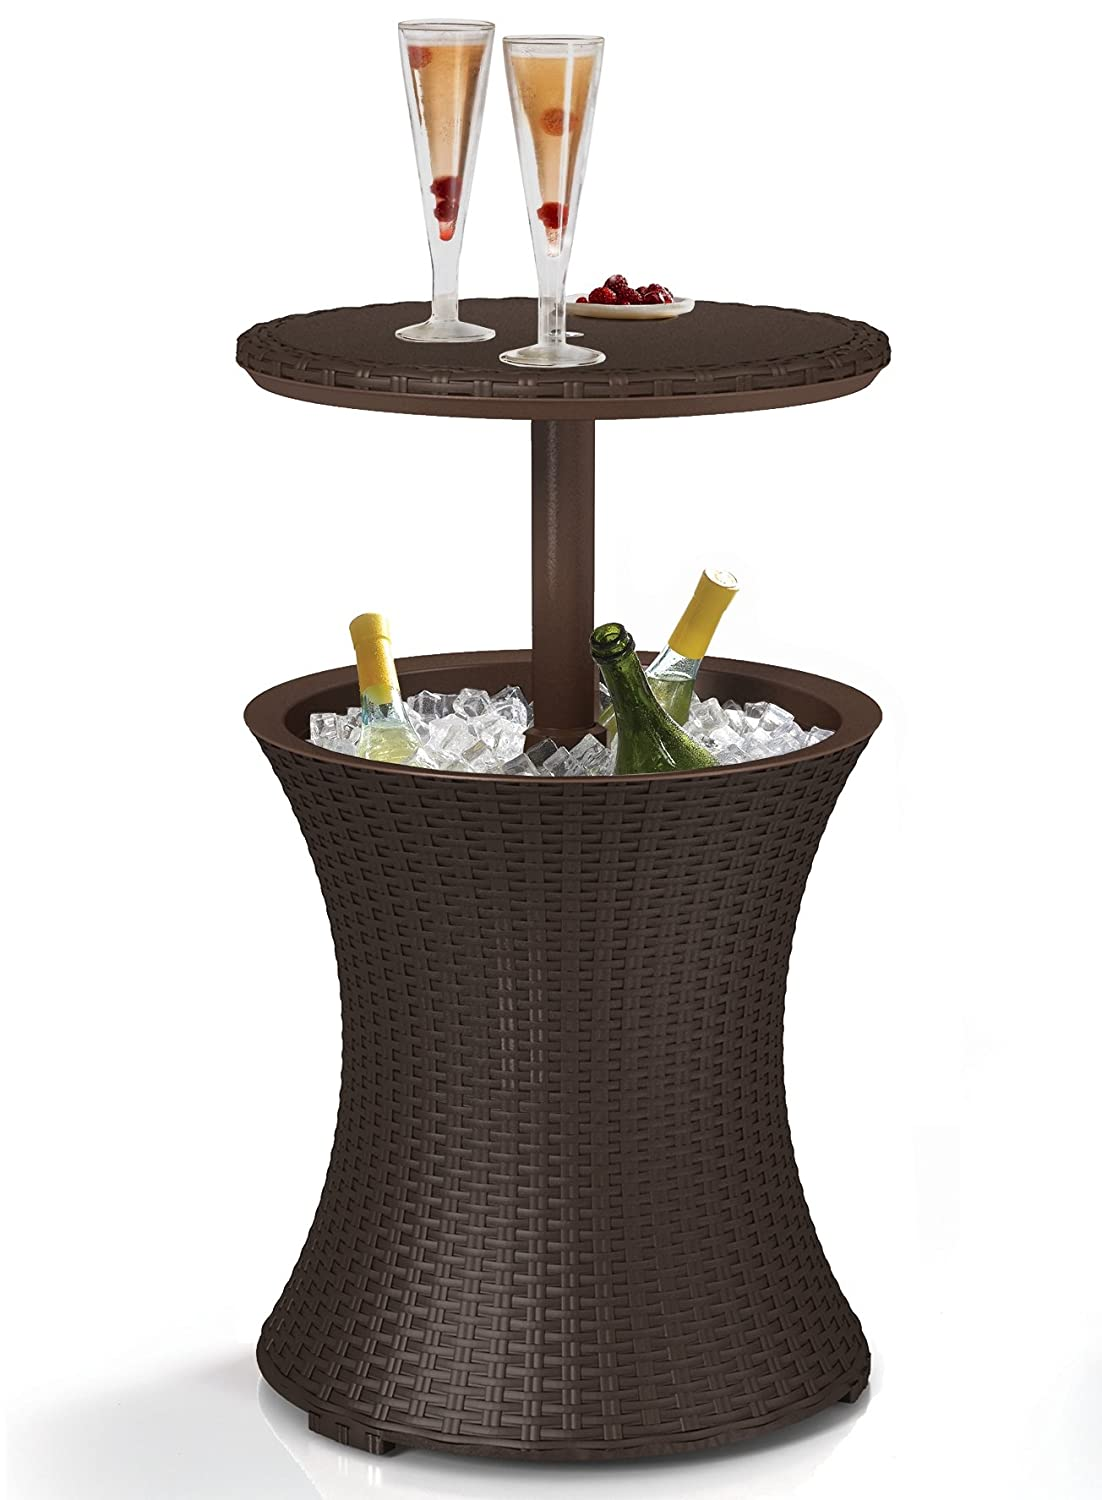 Amazon.com : Keter 7.5-Gal Cool Bar Rattan Style Outdoor Patio Pool Cooler  Table, Brown : Wicker Cooler : Garden & Outdoor - Amazon.com : Keter 7.5-Gal Cool Bar Rattan Style Outdoor Patio Pool